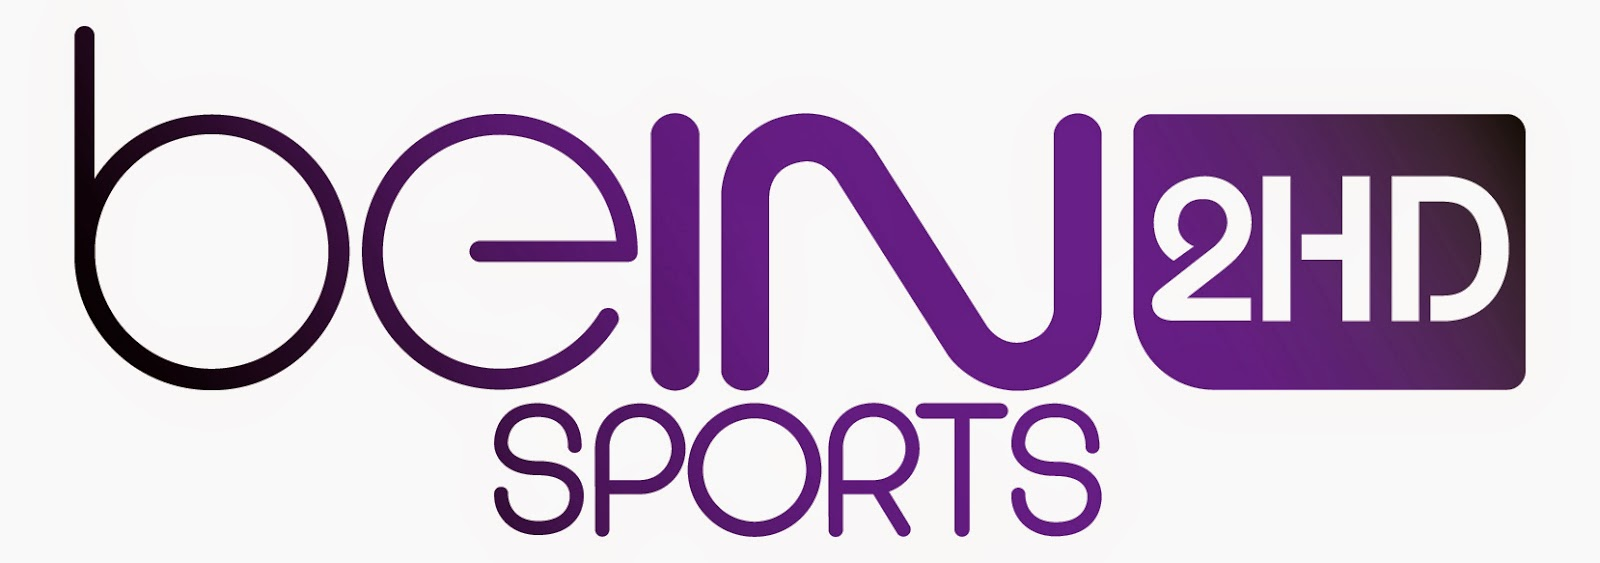 Football Streaming Bein Sport Live 2hd